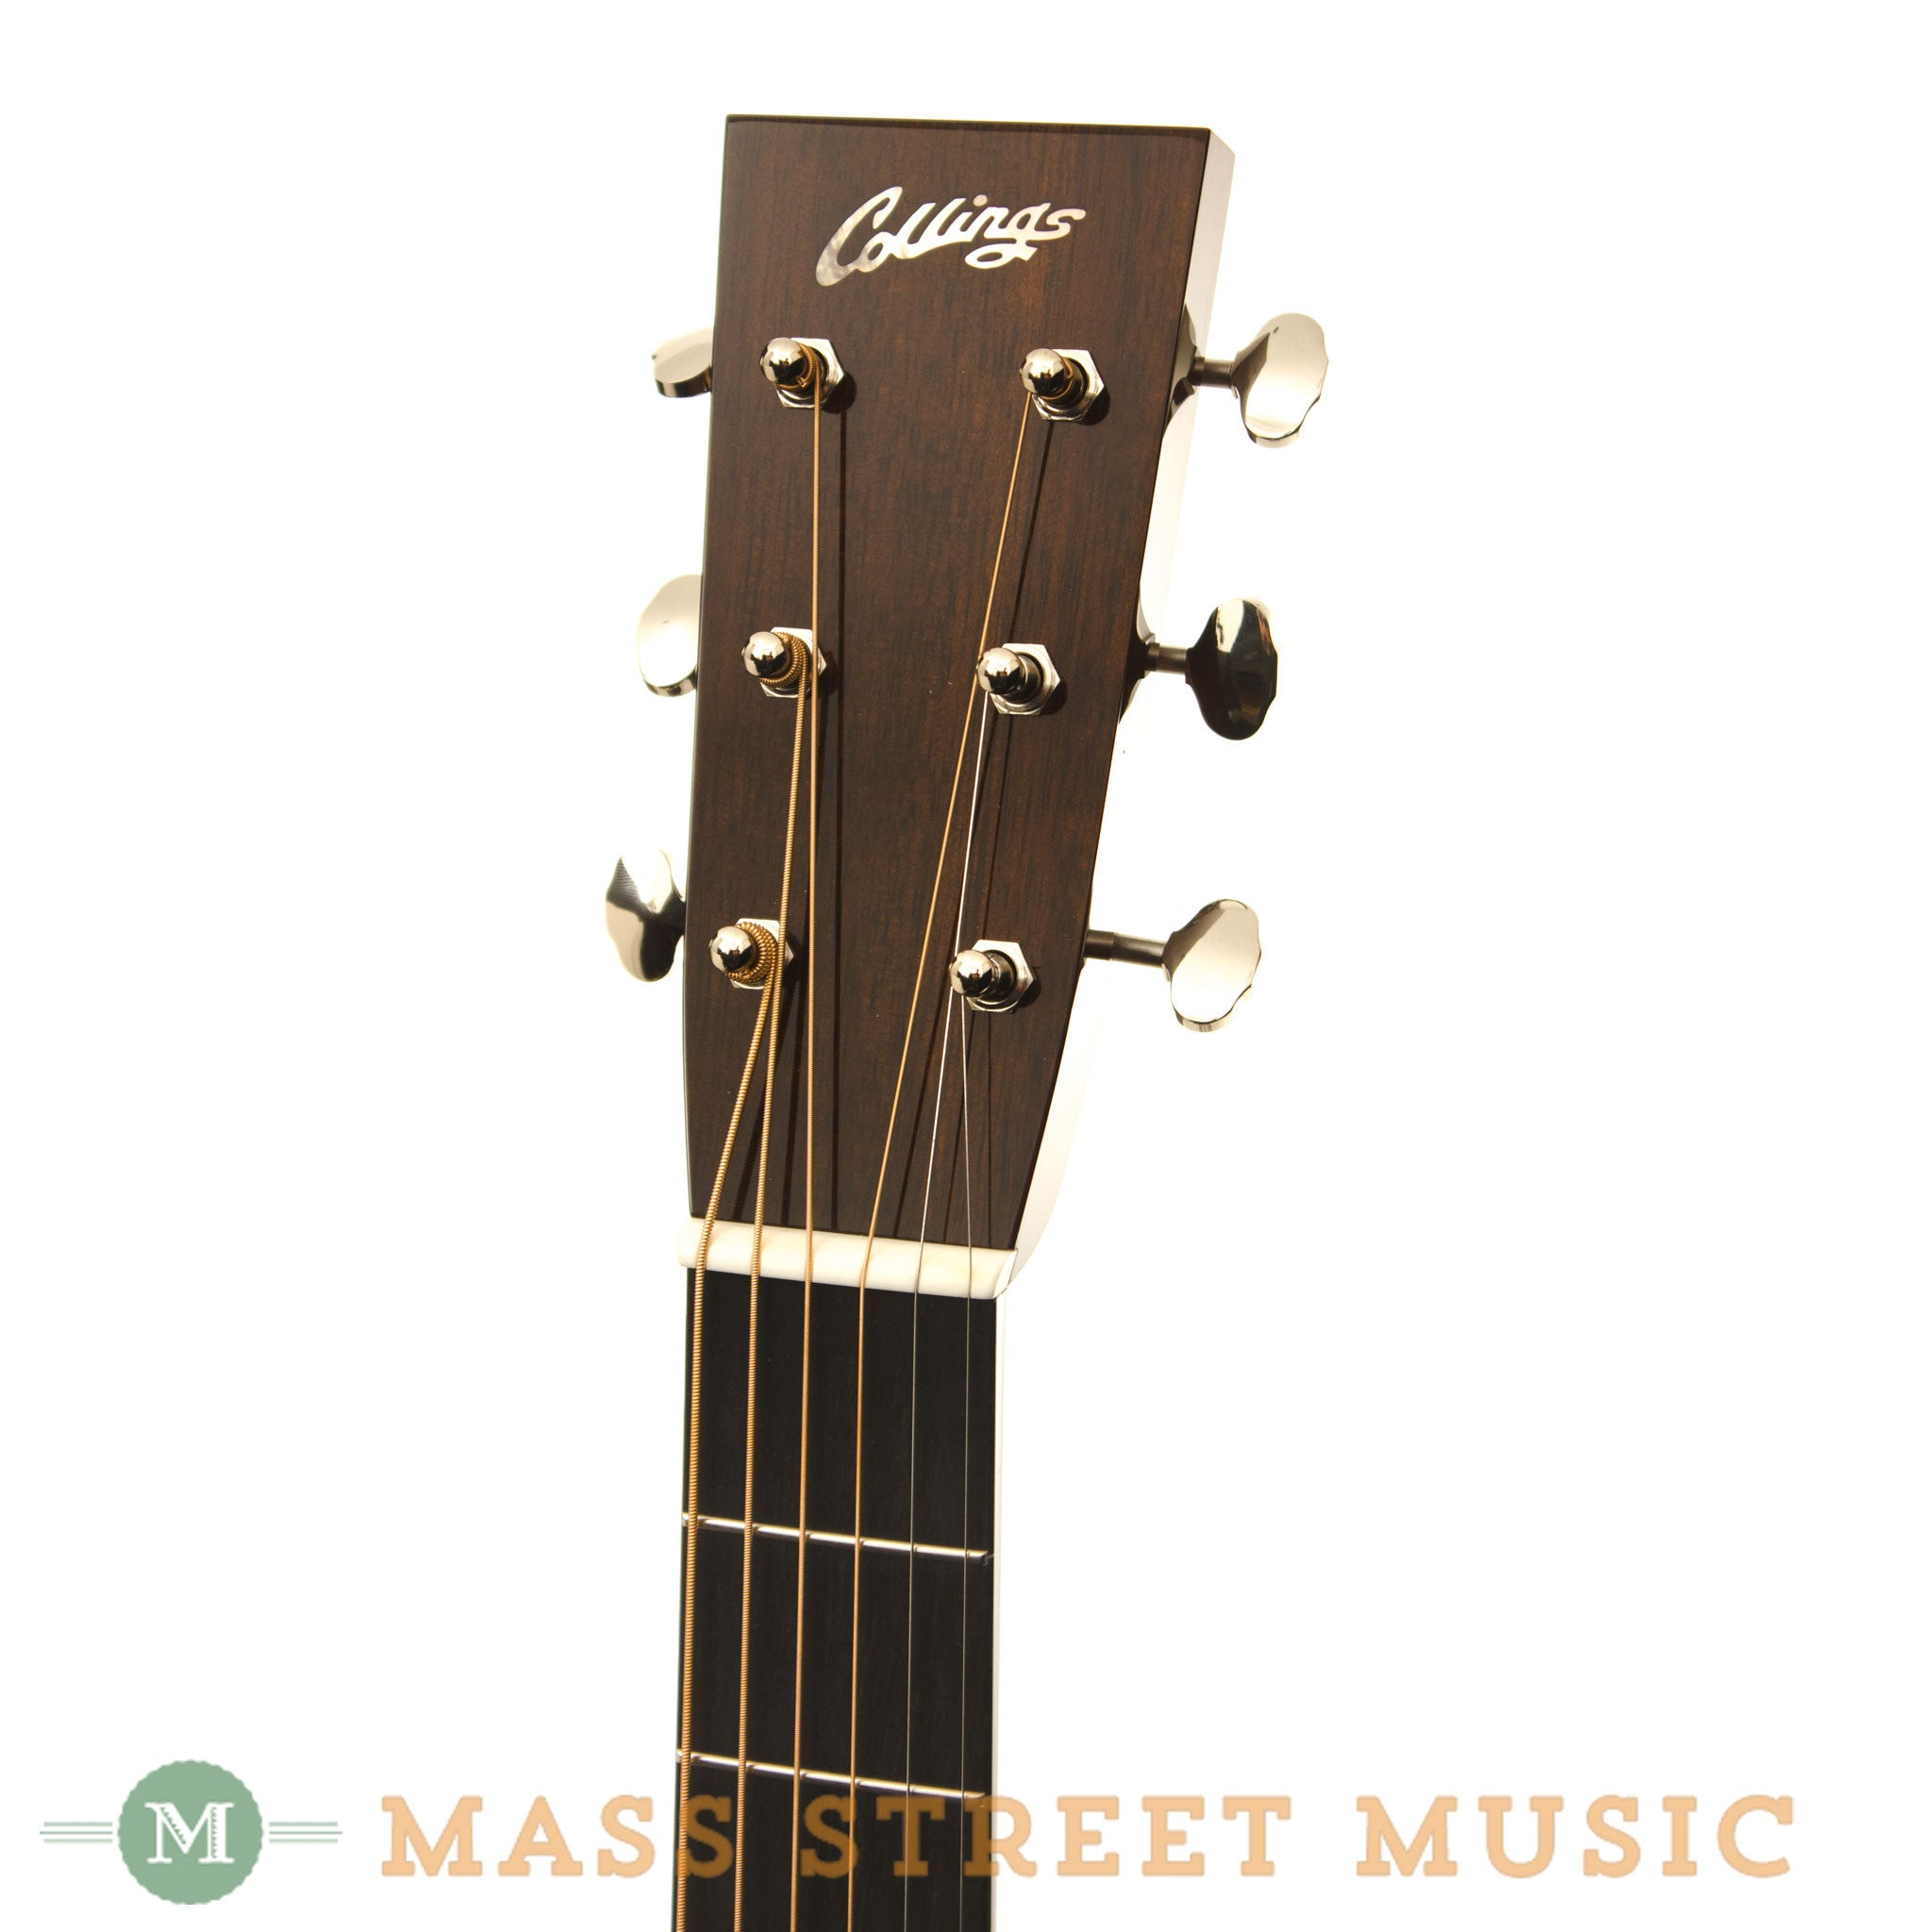 collings d2g german spruce acoustic guitar with case mass street music store. Black Bedroom Furniture Sets. Home Design Ideas